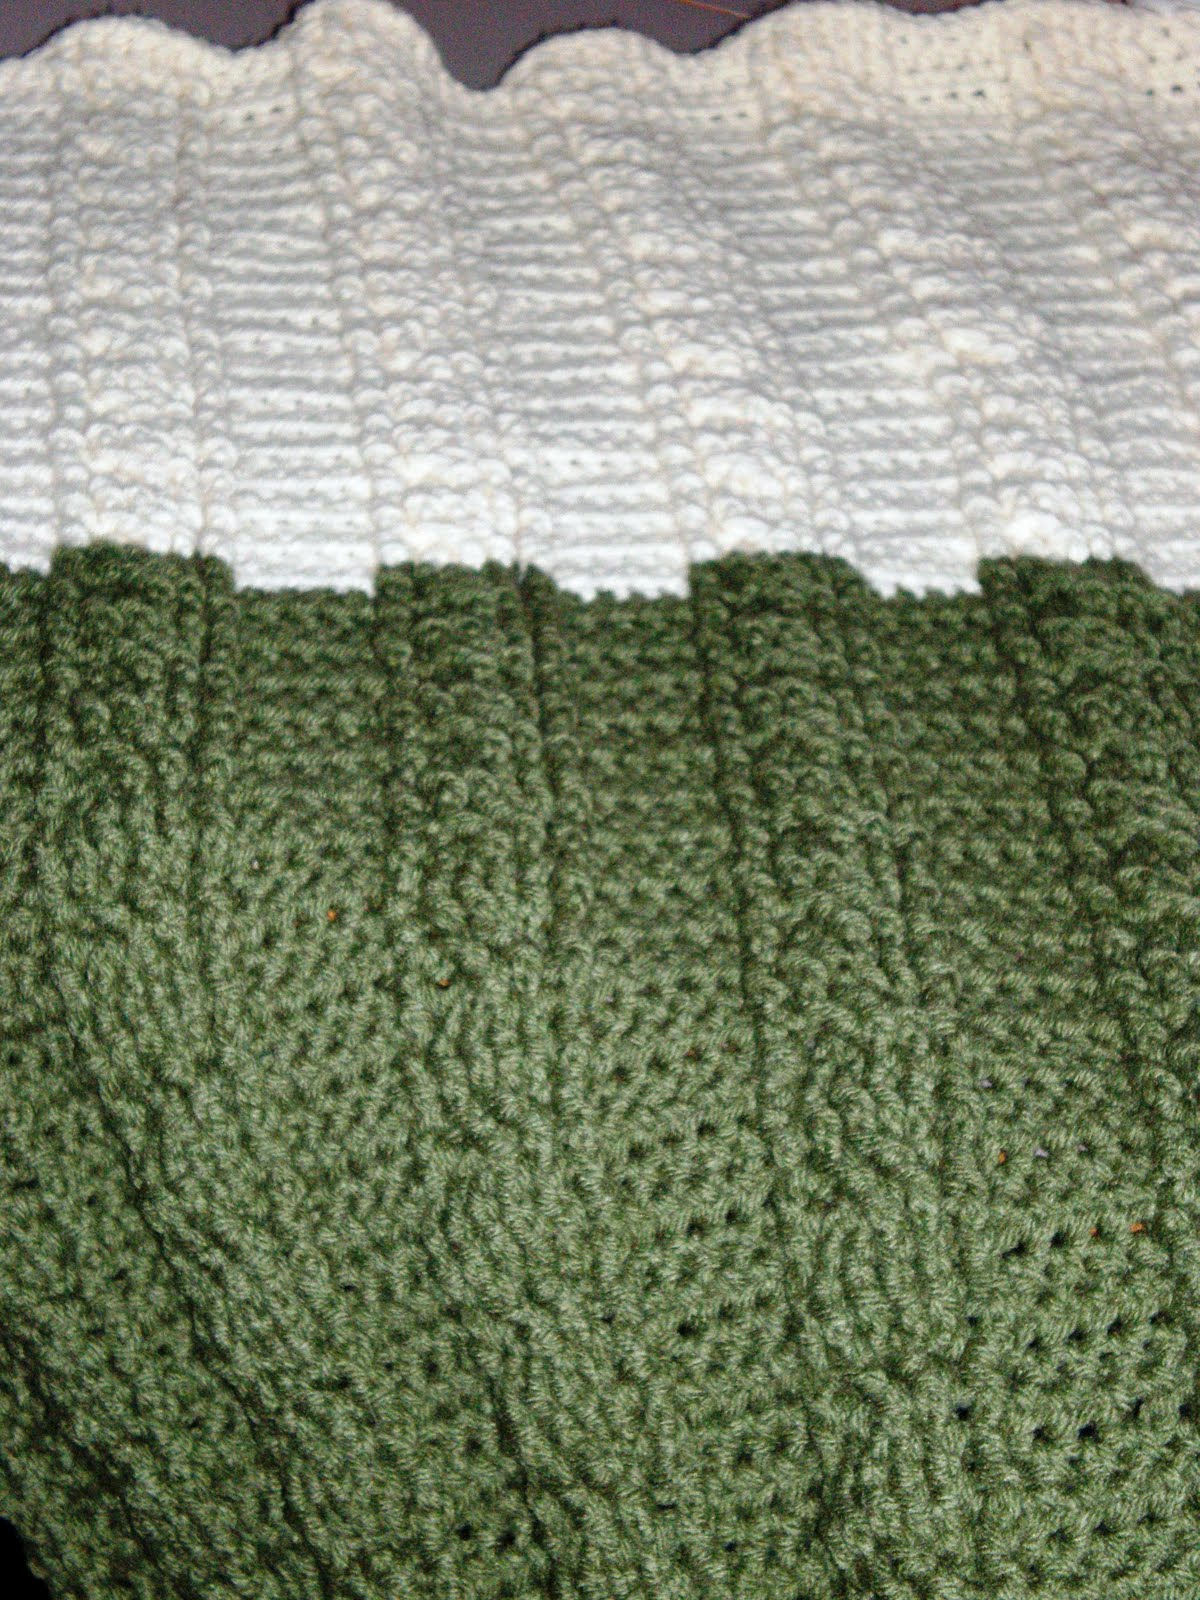 Blanket Cable Knit - Compare Prices, Reviews and Buy at Nextag